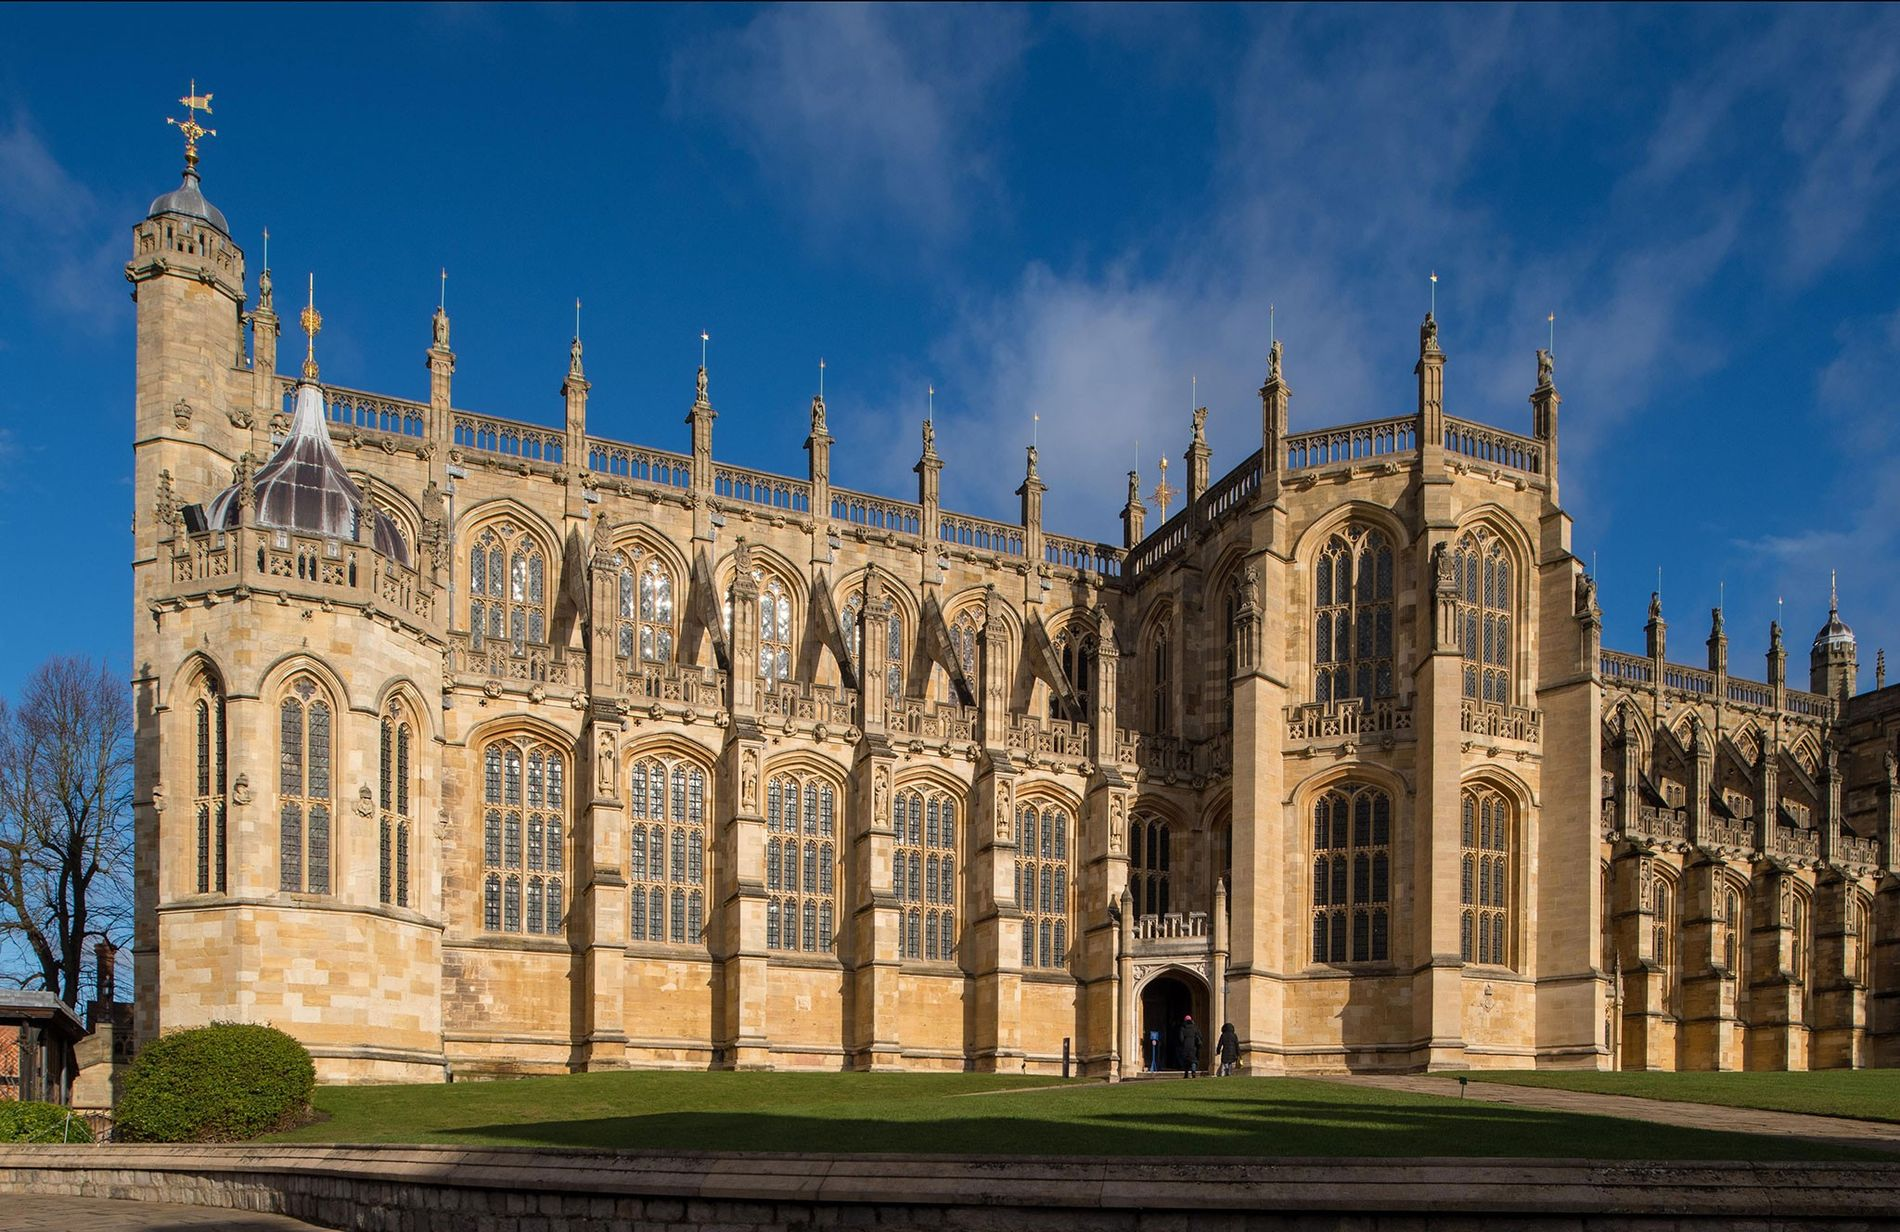 Prince Harry and Meghan Markle were married in St. George's Chapel at Windsor Castle on May ...